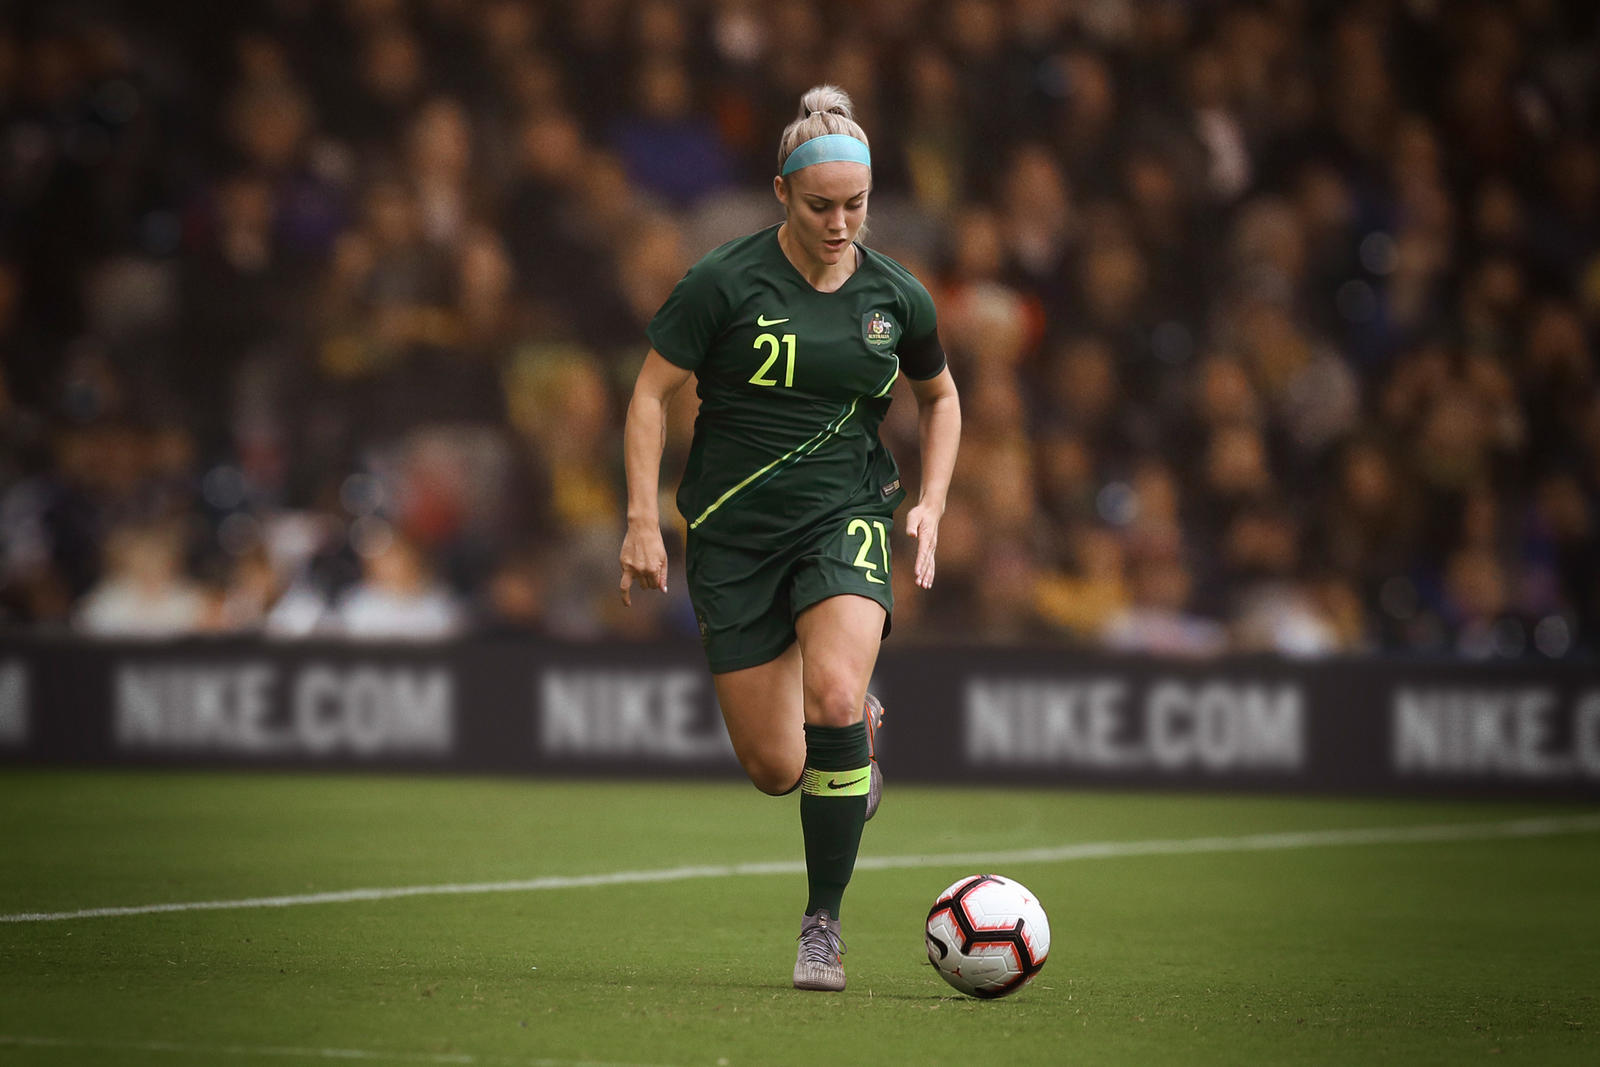 australia-national-team-kit-2019-performance-003_85982.jpg